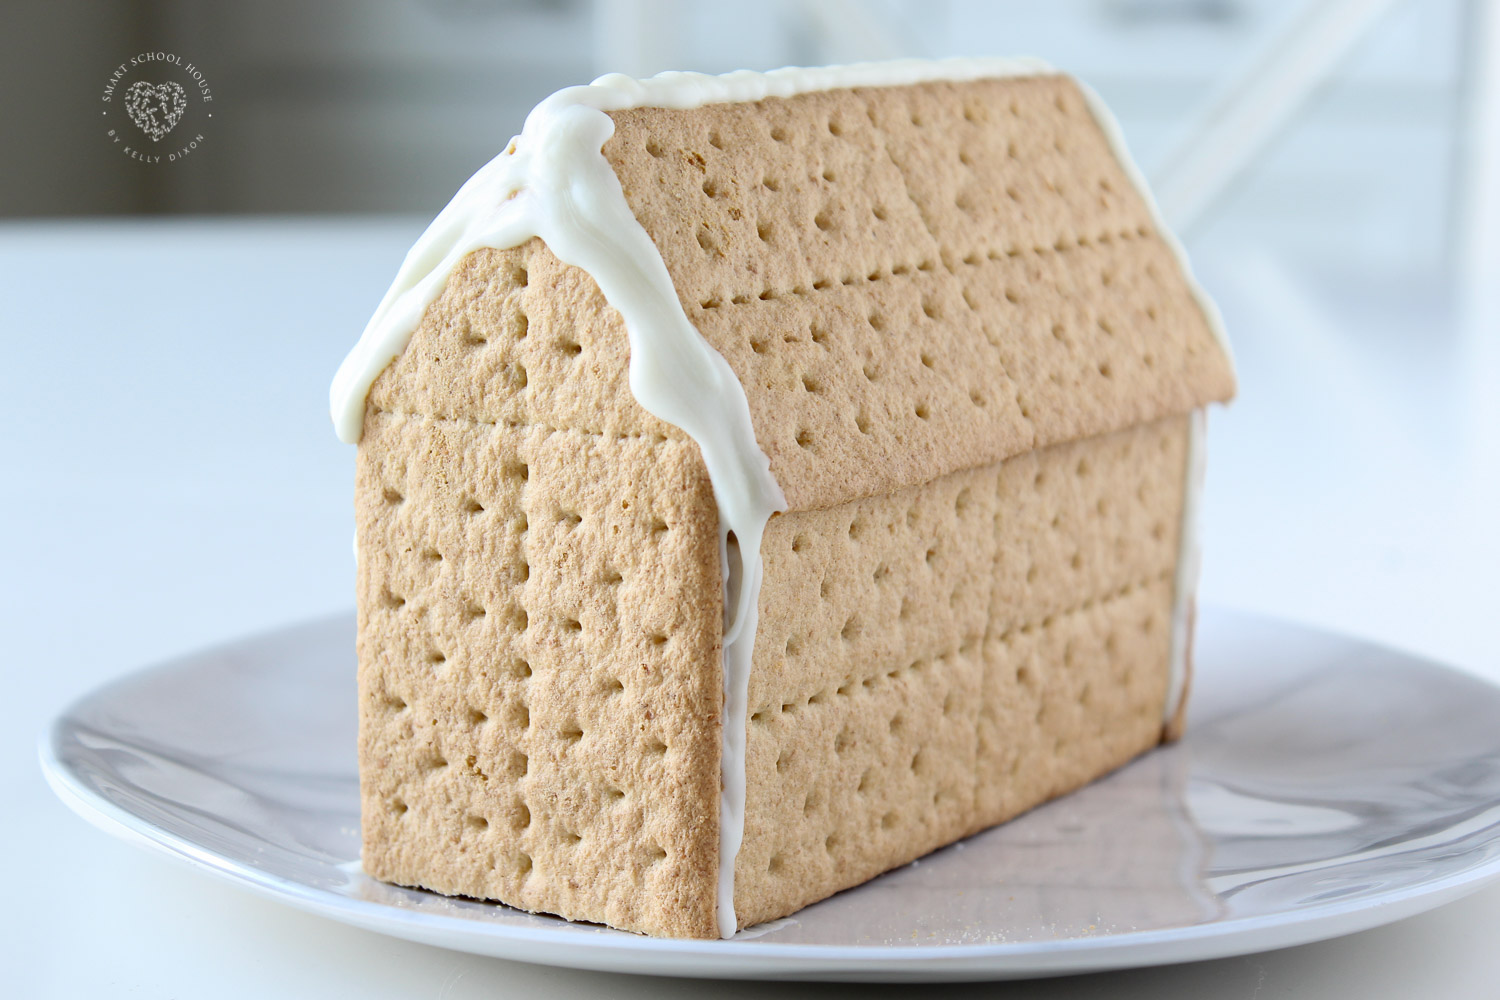 How to make a gingerbread house using graham crackers